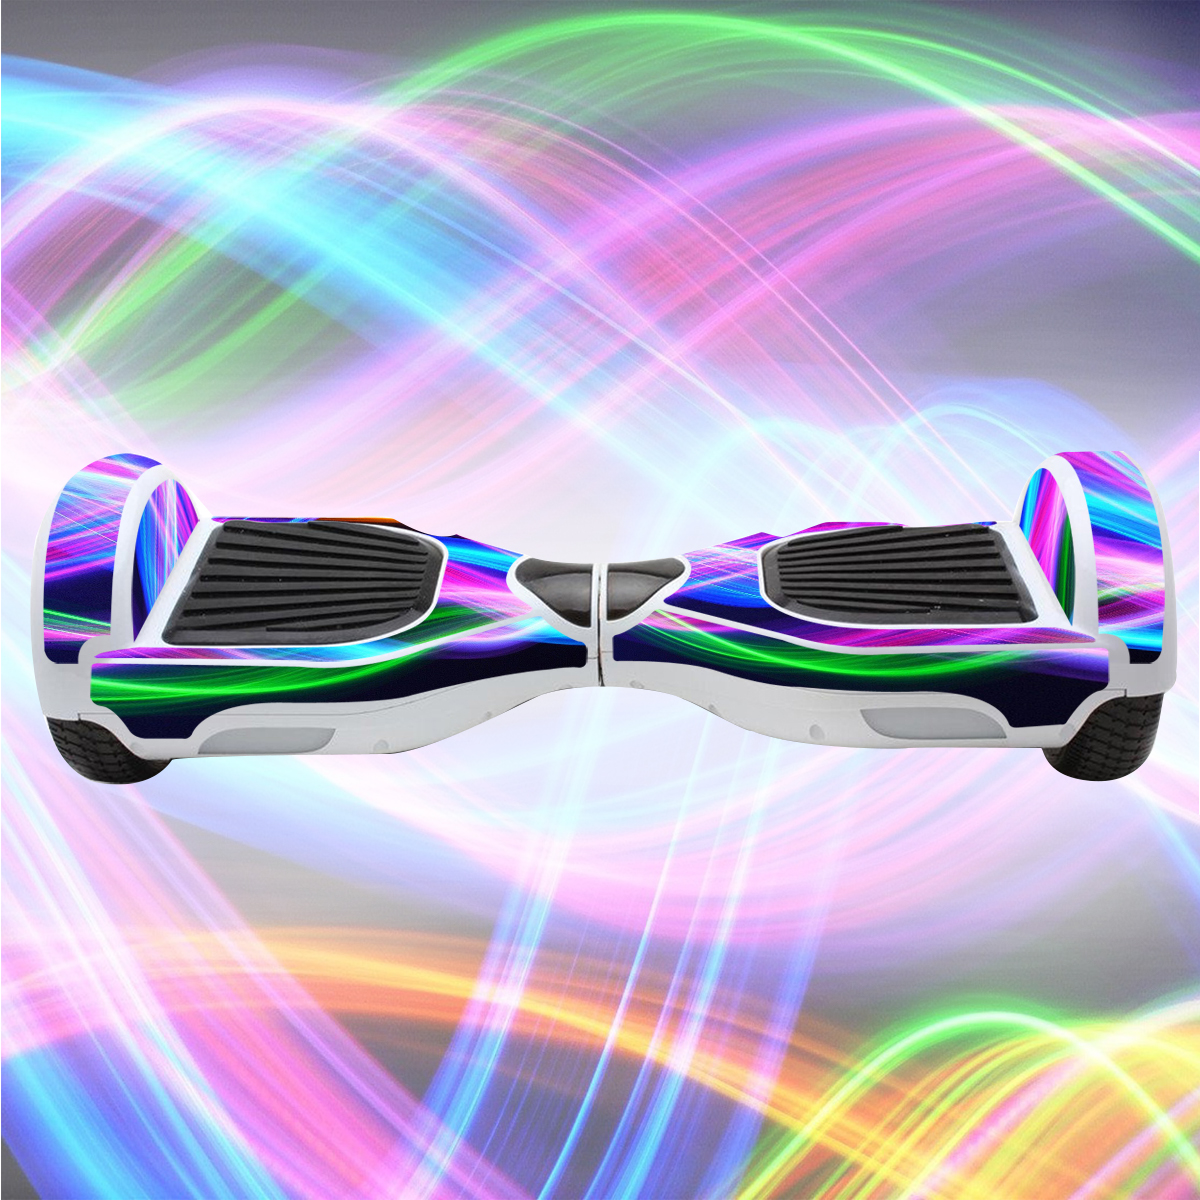 WANLIAN Self Balancing Scooter Sticker,Skin Compatible with Hoverboard Scooter,Hoverboard Vinyl Decal wrap Cover,Smart Hover Scooter Protective Skin Wrap,Easy to Apply and Remove